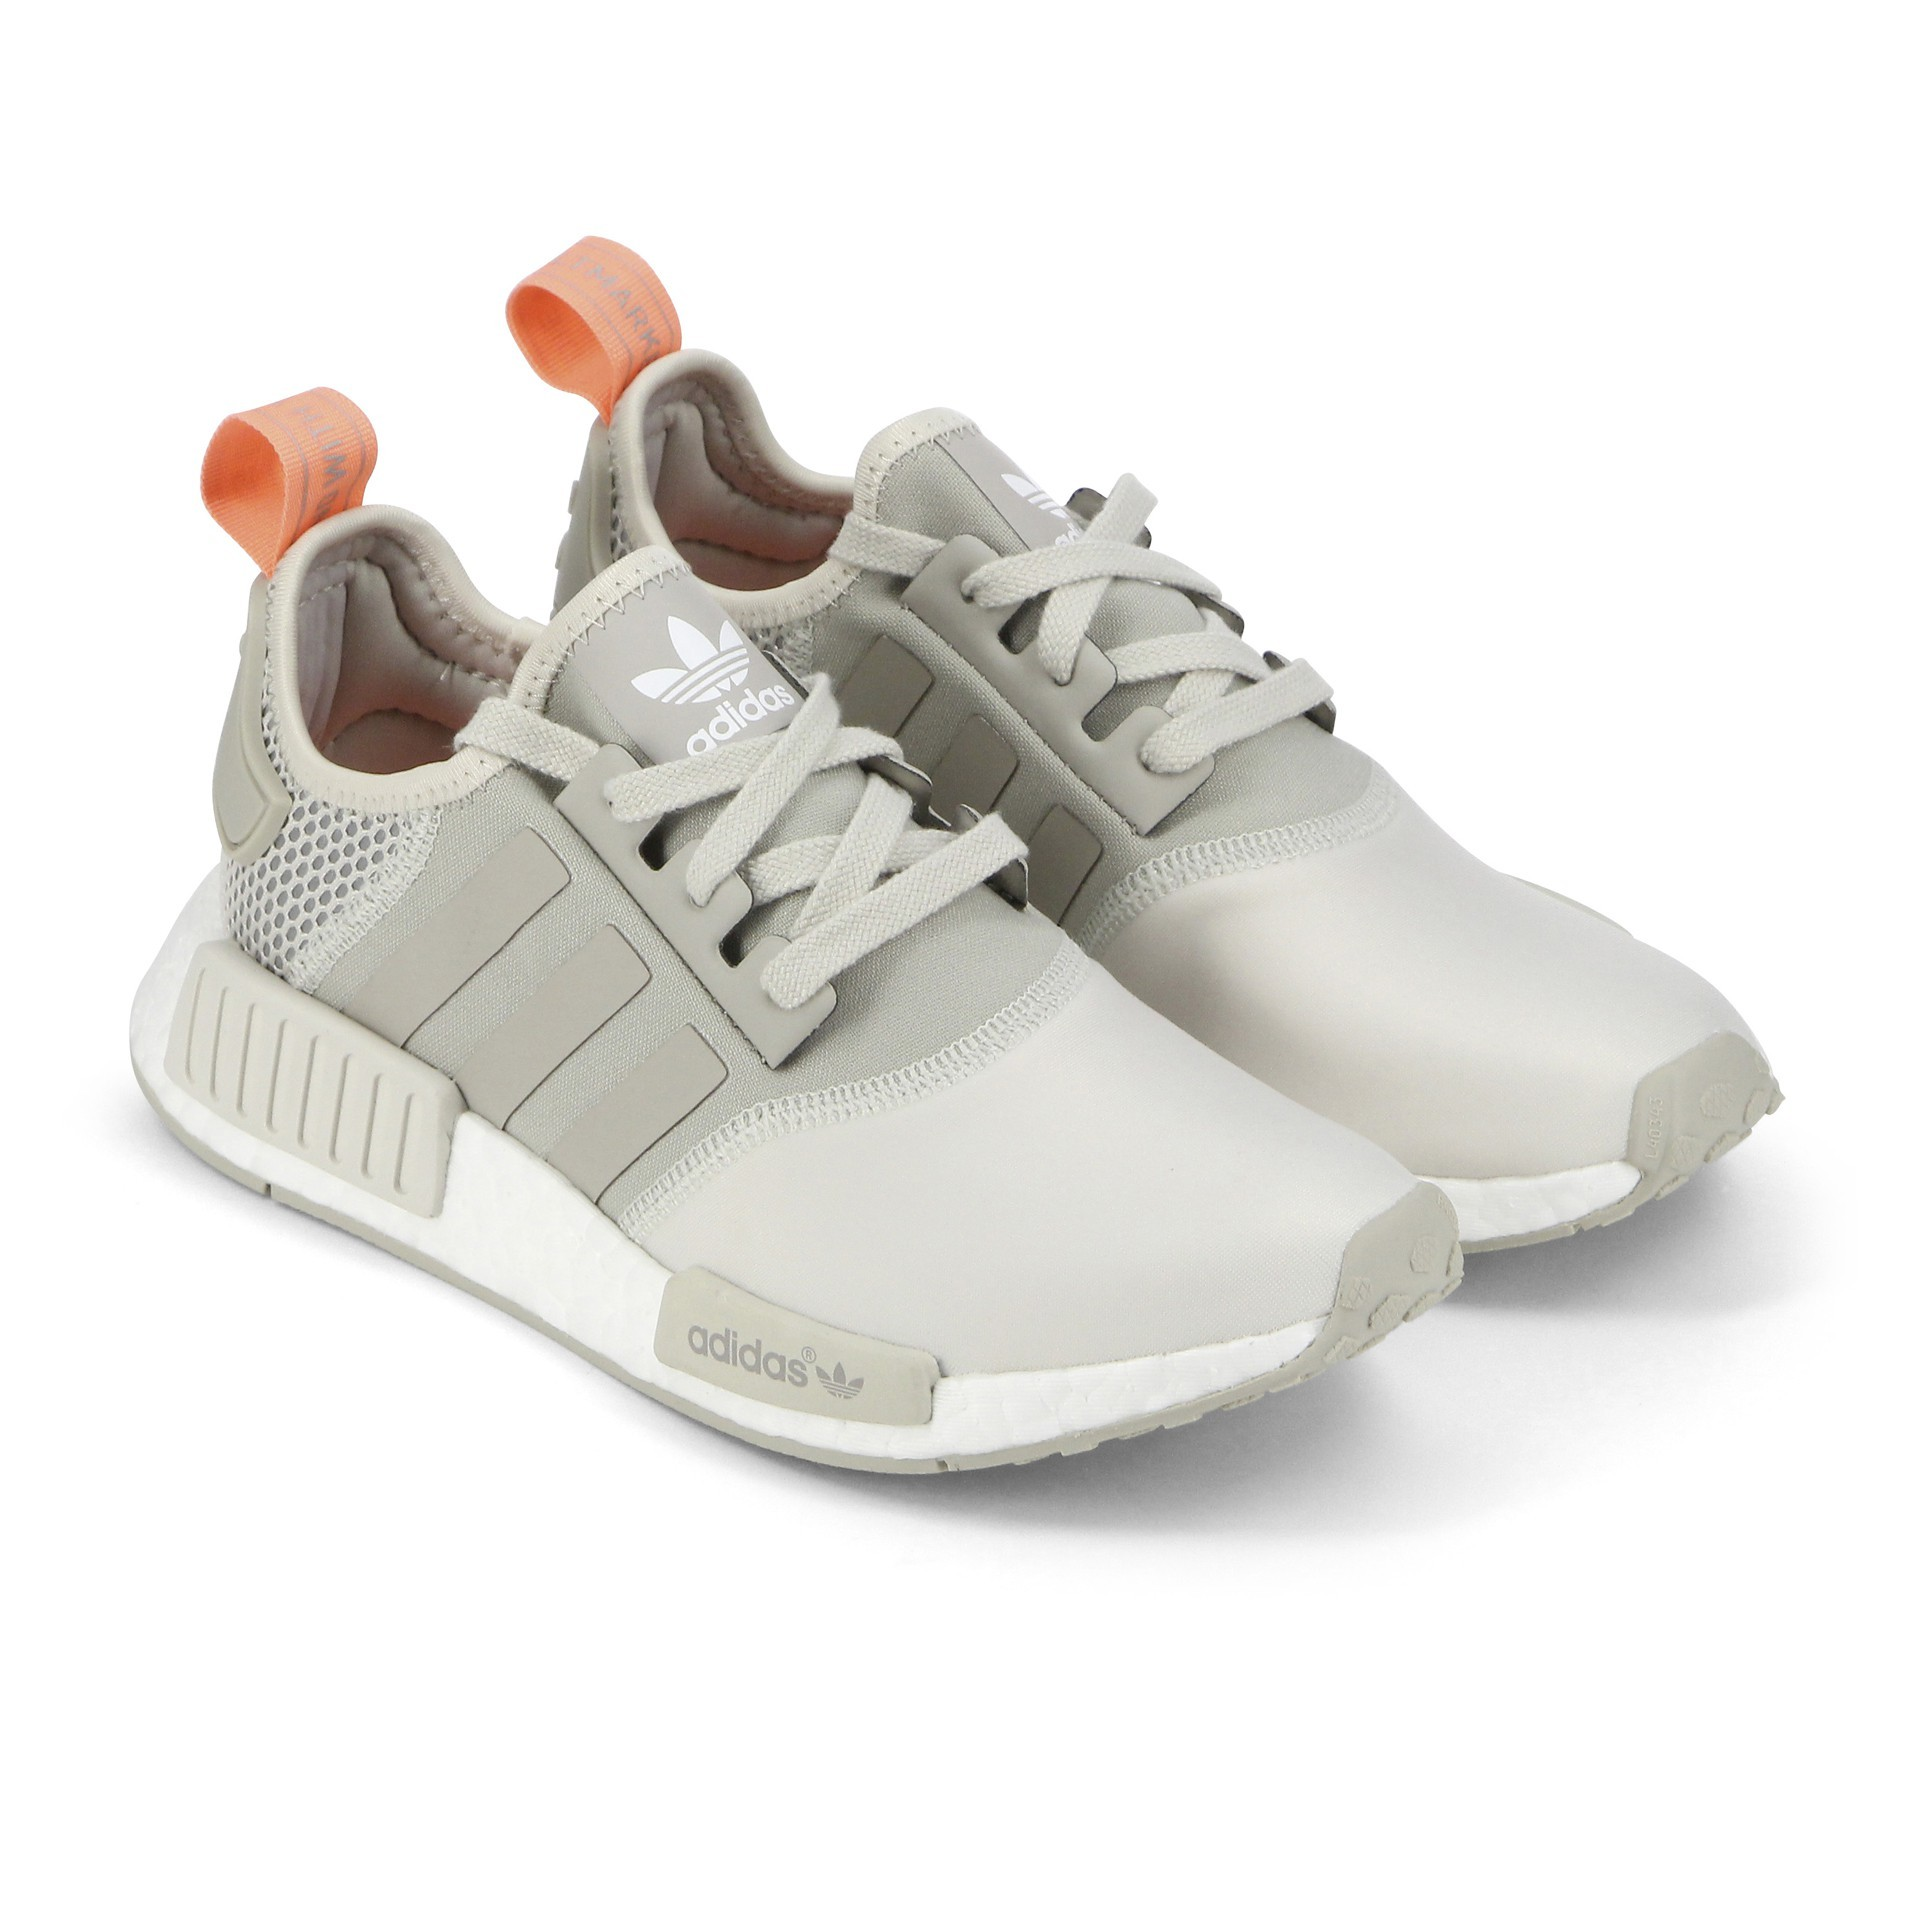 adidas nmd homme soldes